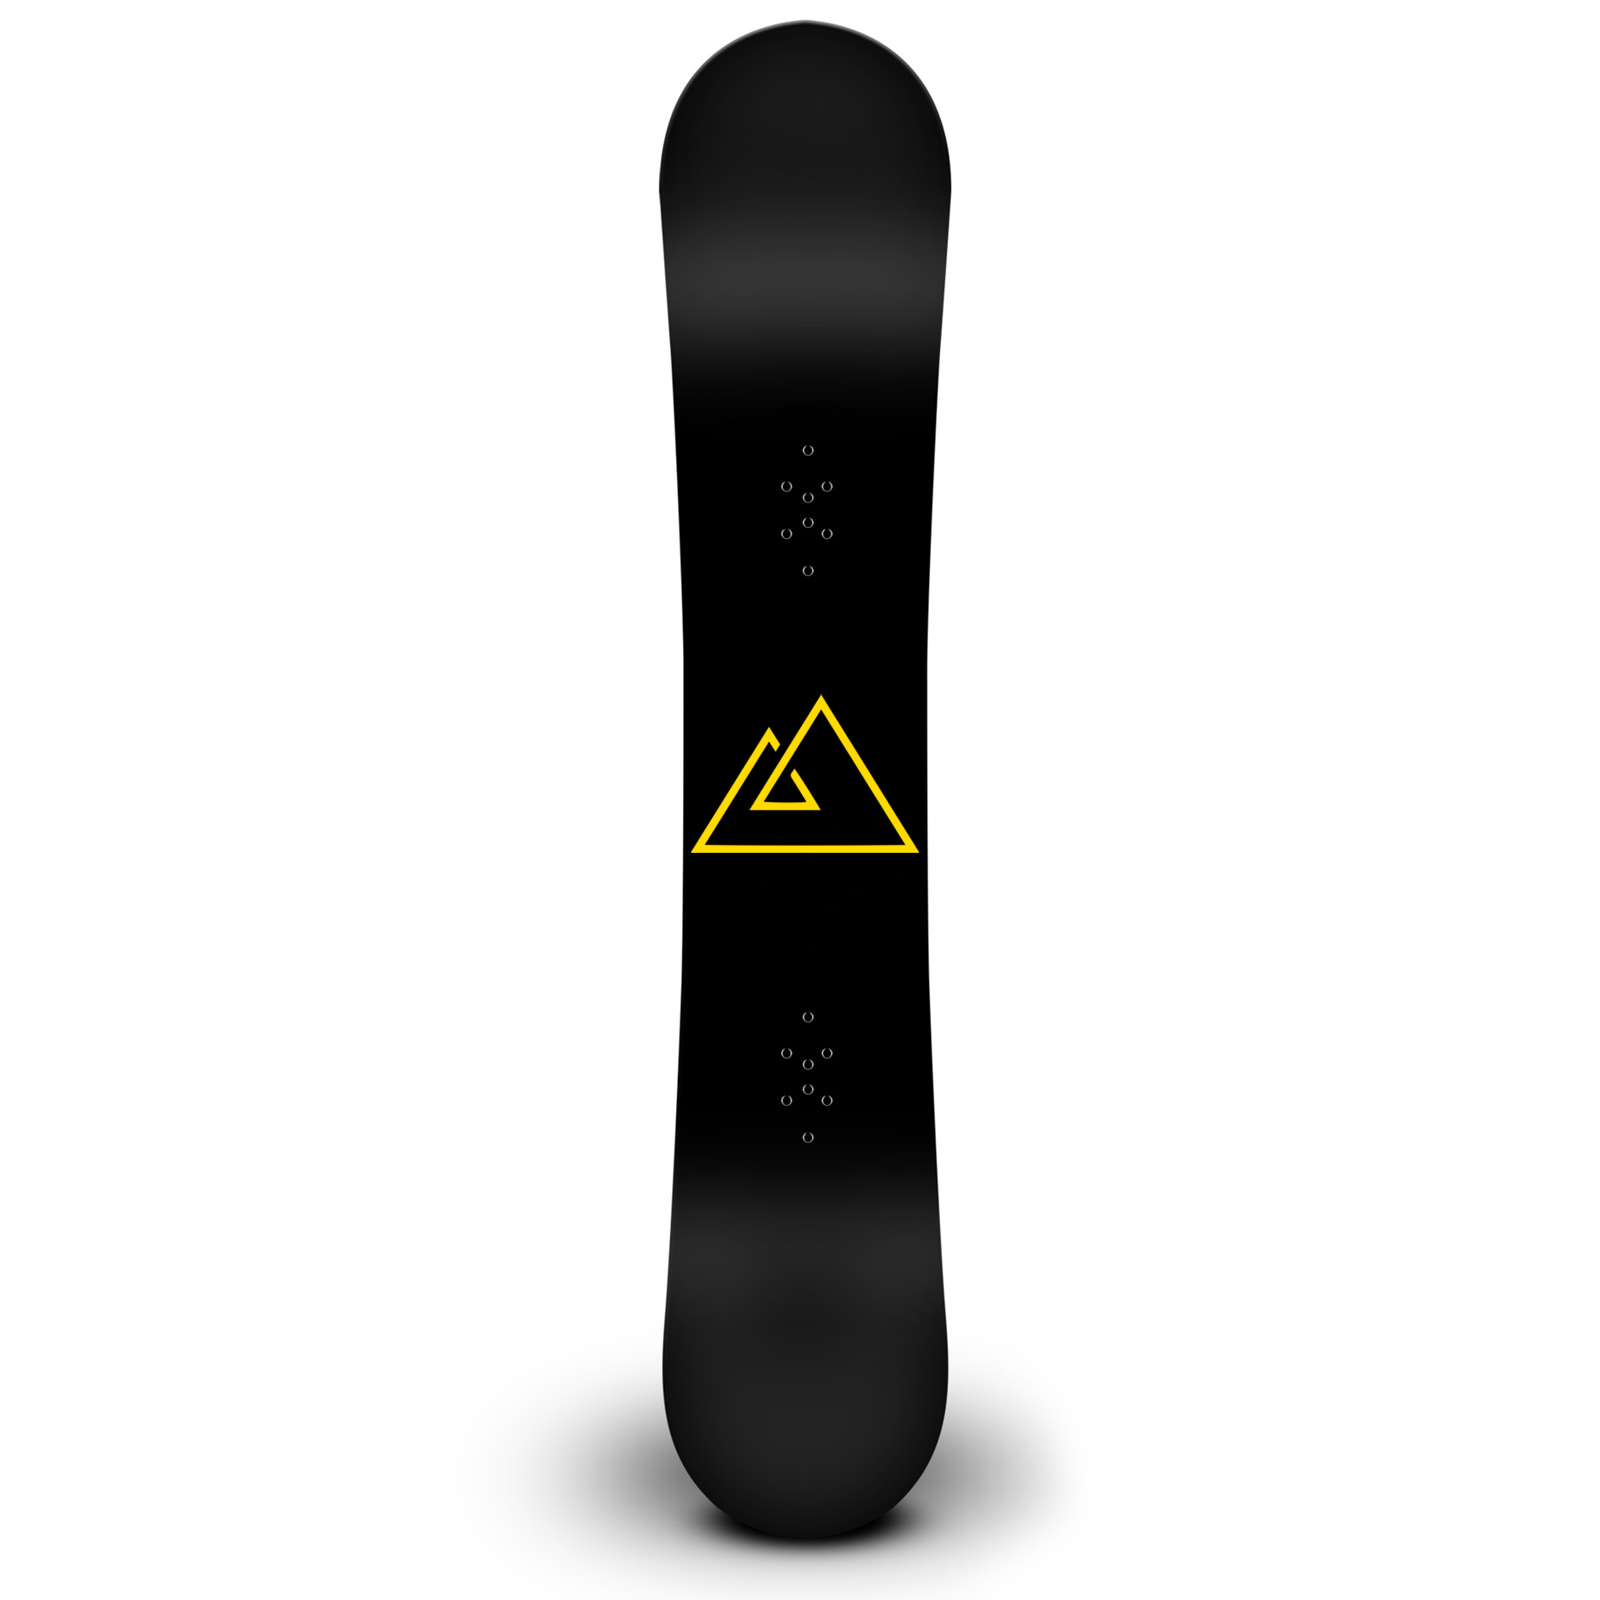 Triple Triangle Symbol Snowboard Sticker All Weather Vinyl Decal